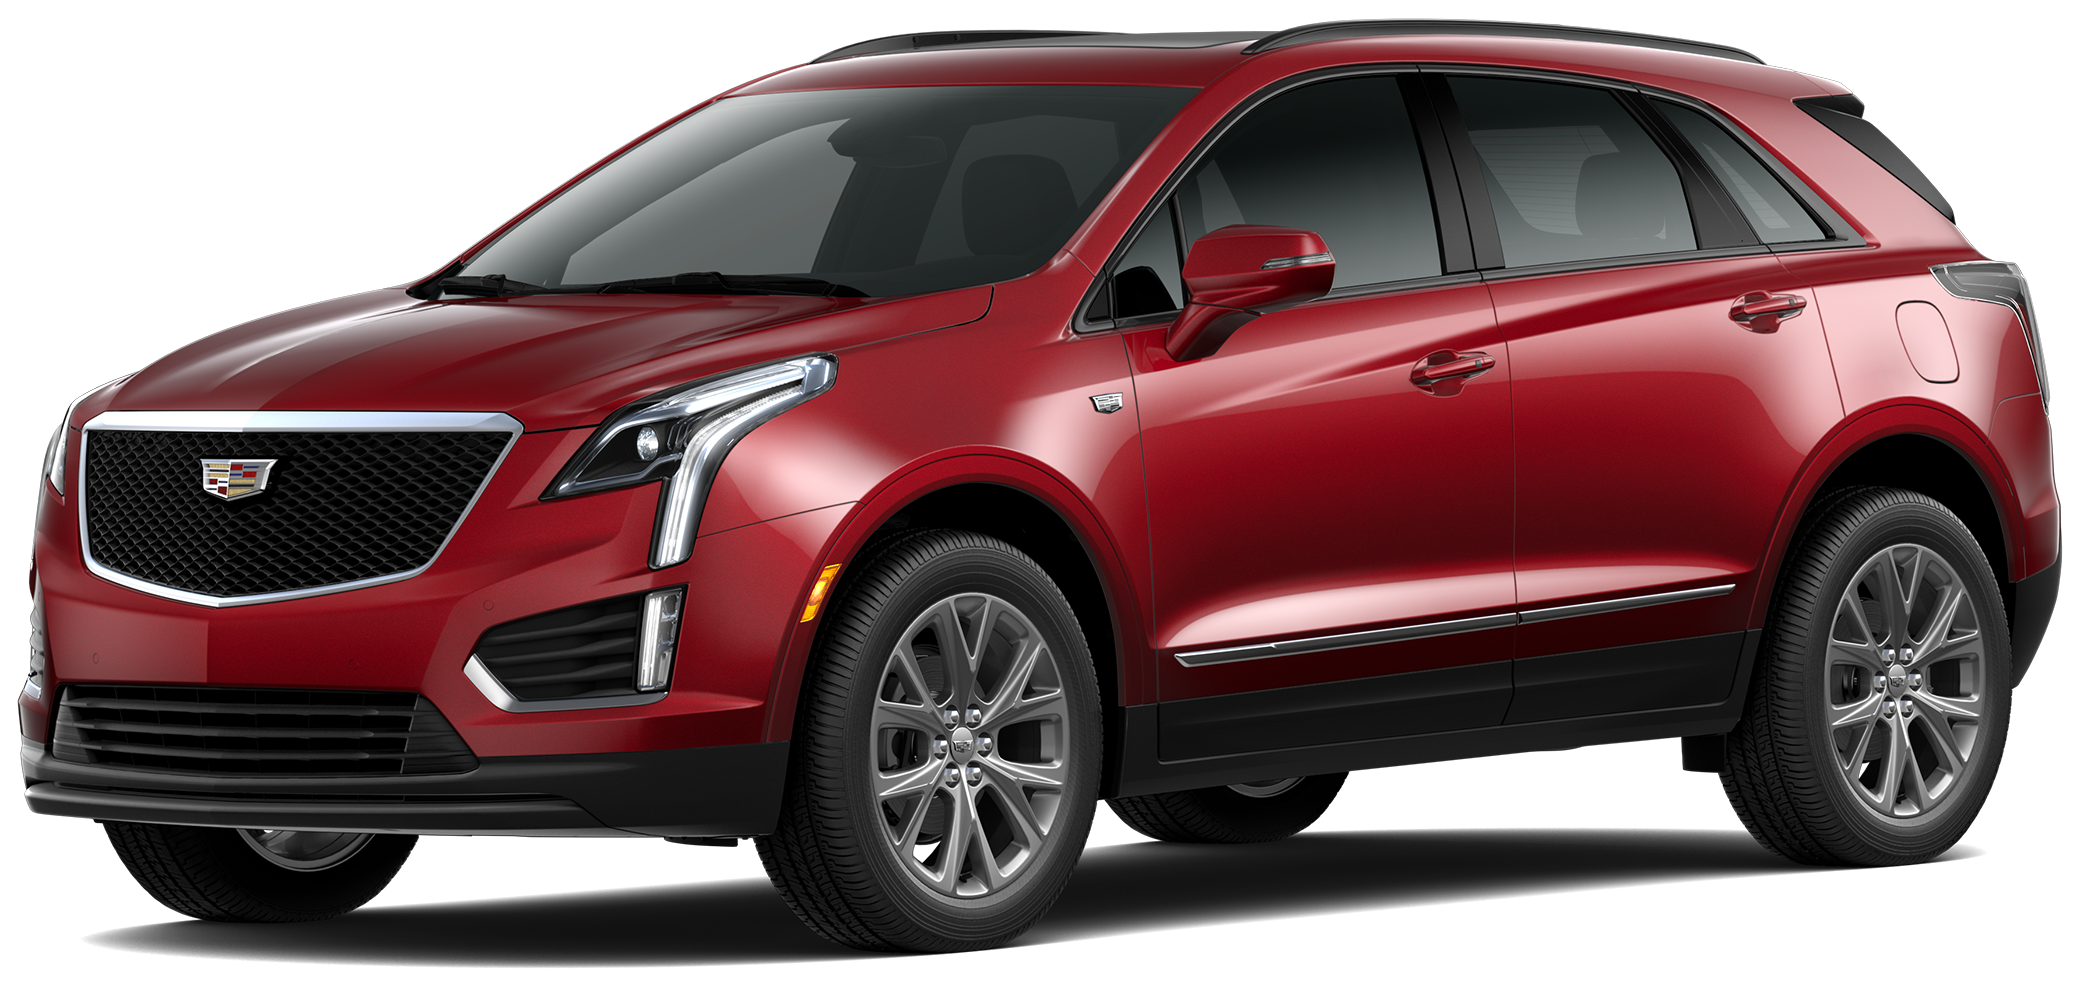 2020 CADILLAC XT5 Incentives, Specials & Offers in TULSA OK